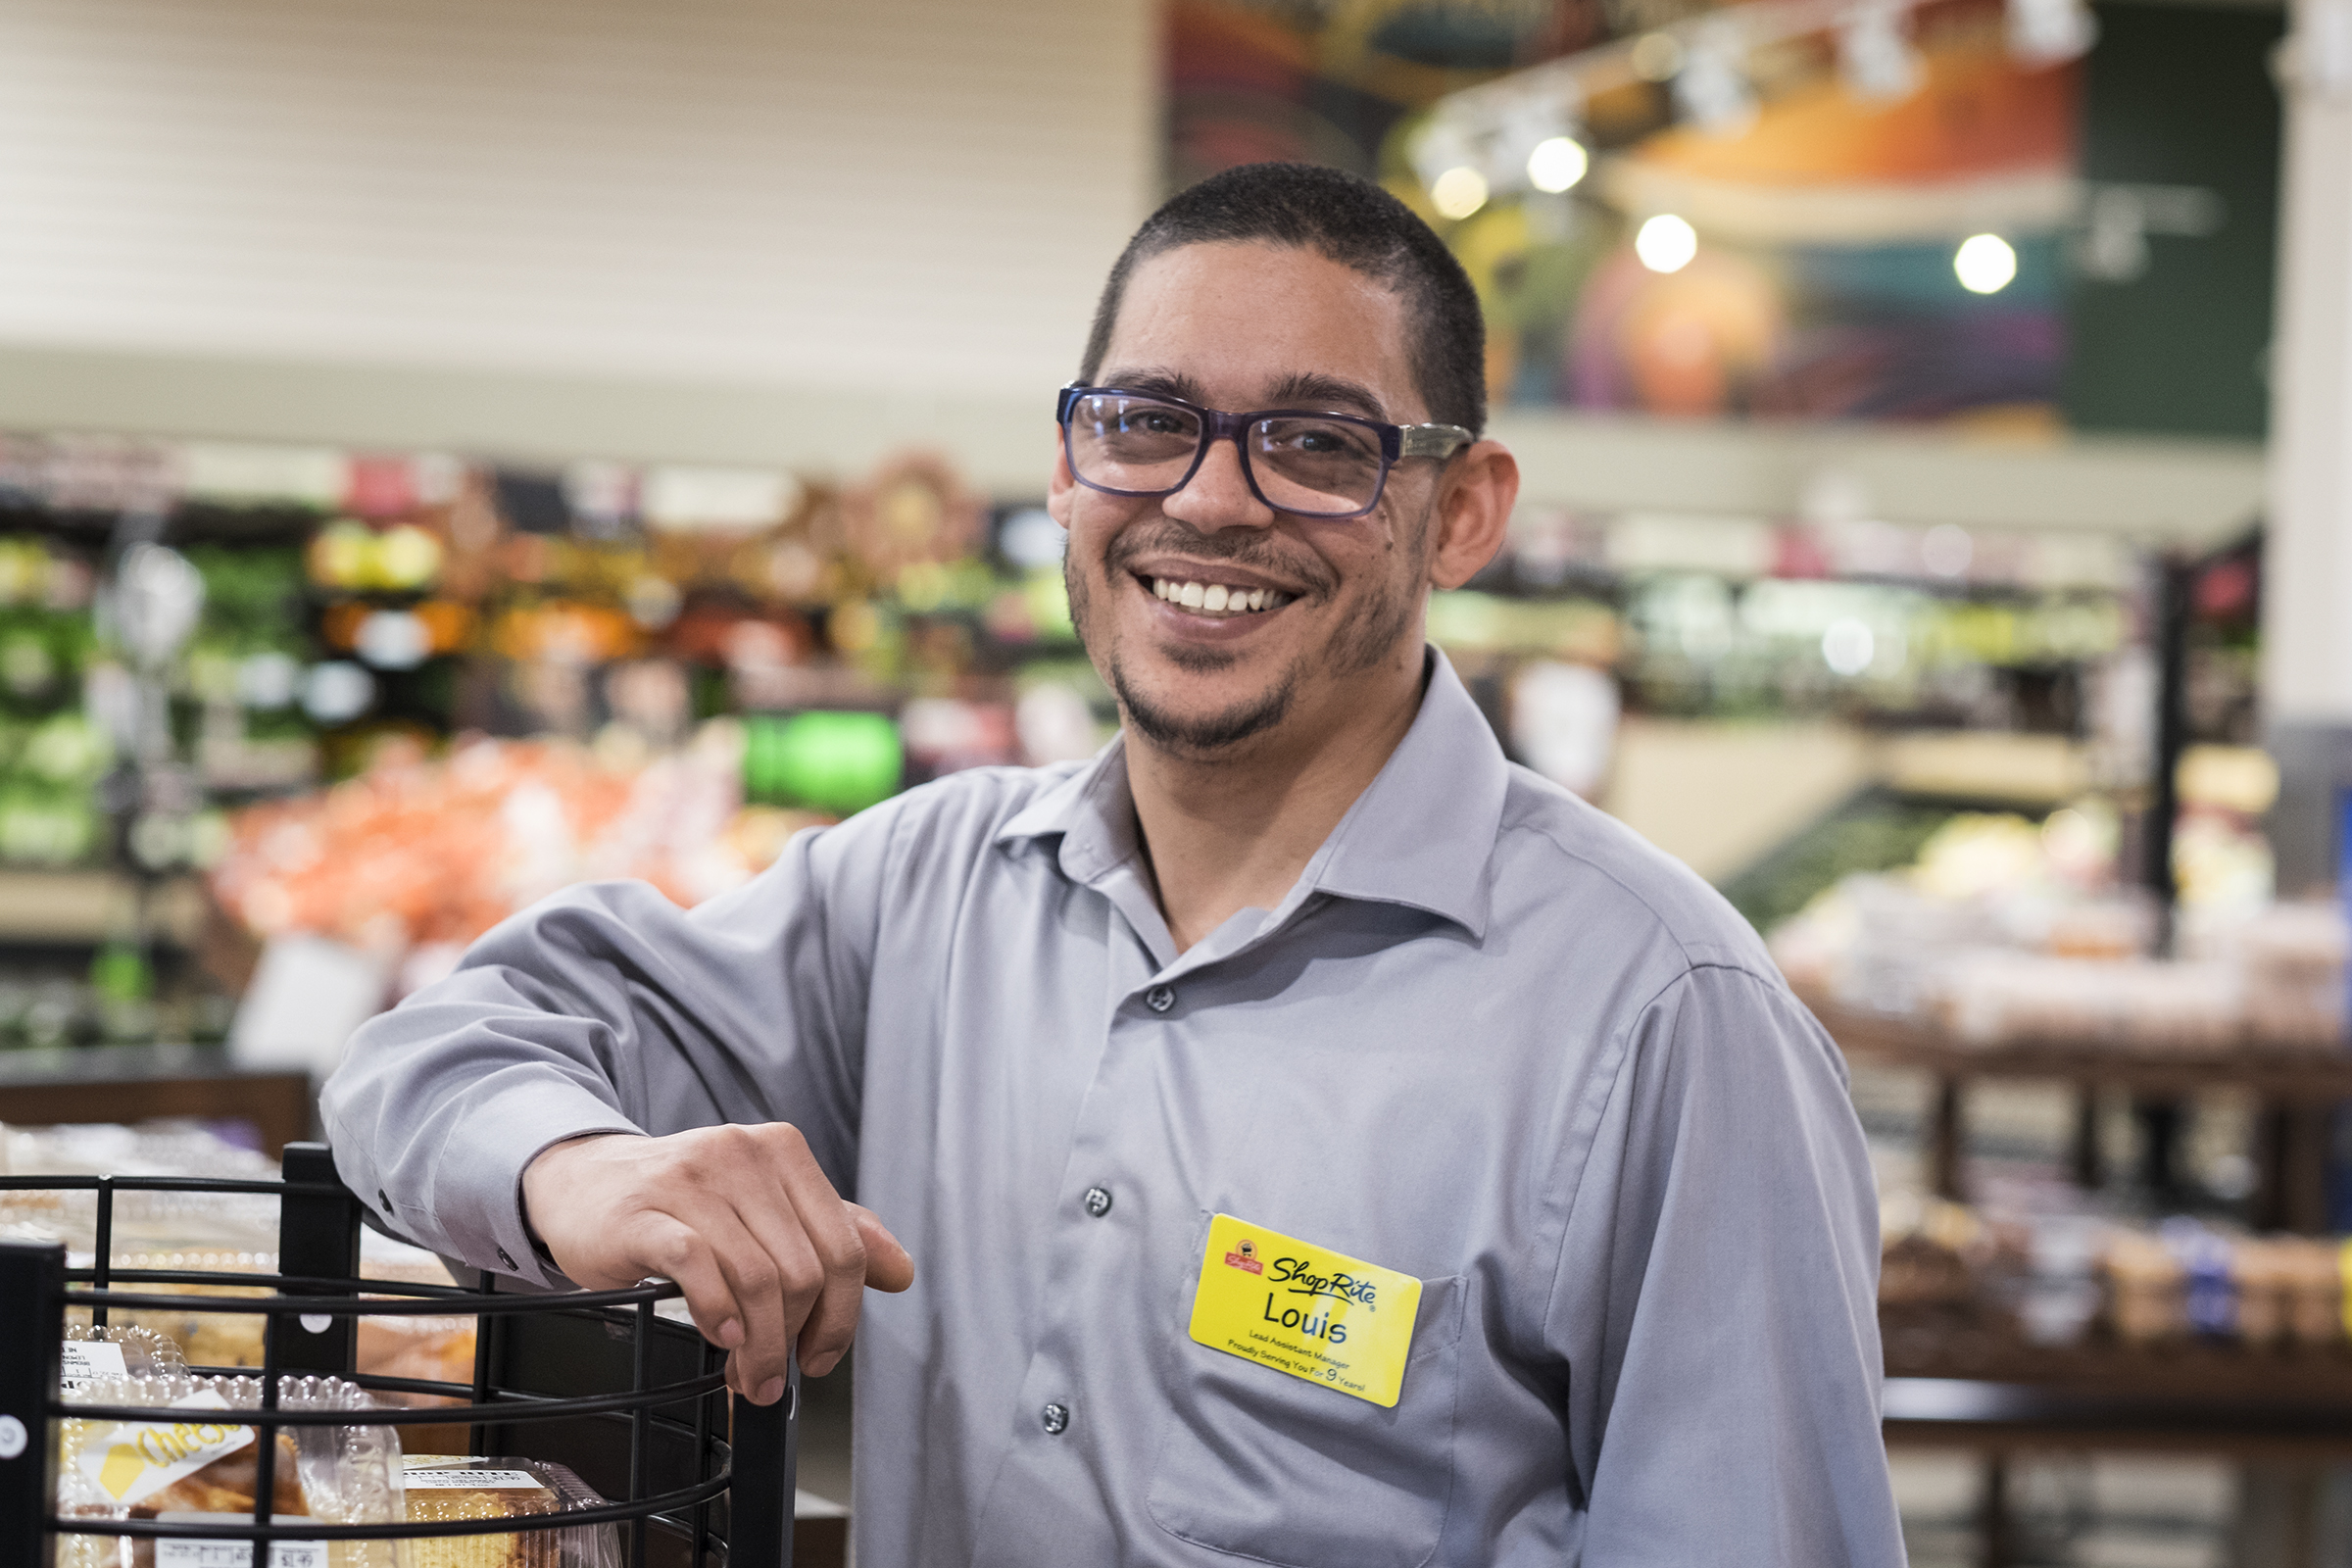 Louis Rivera, 40, a former drug dealer who has served time and has been employed by ShopRite for nine years, was promoted to lead assistant manager at the East Norriton Square store. ED HILLE / Staff Photographer.